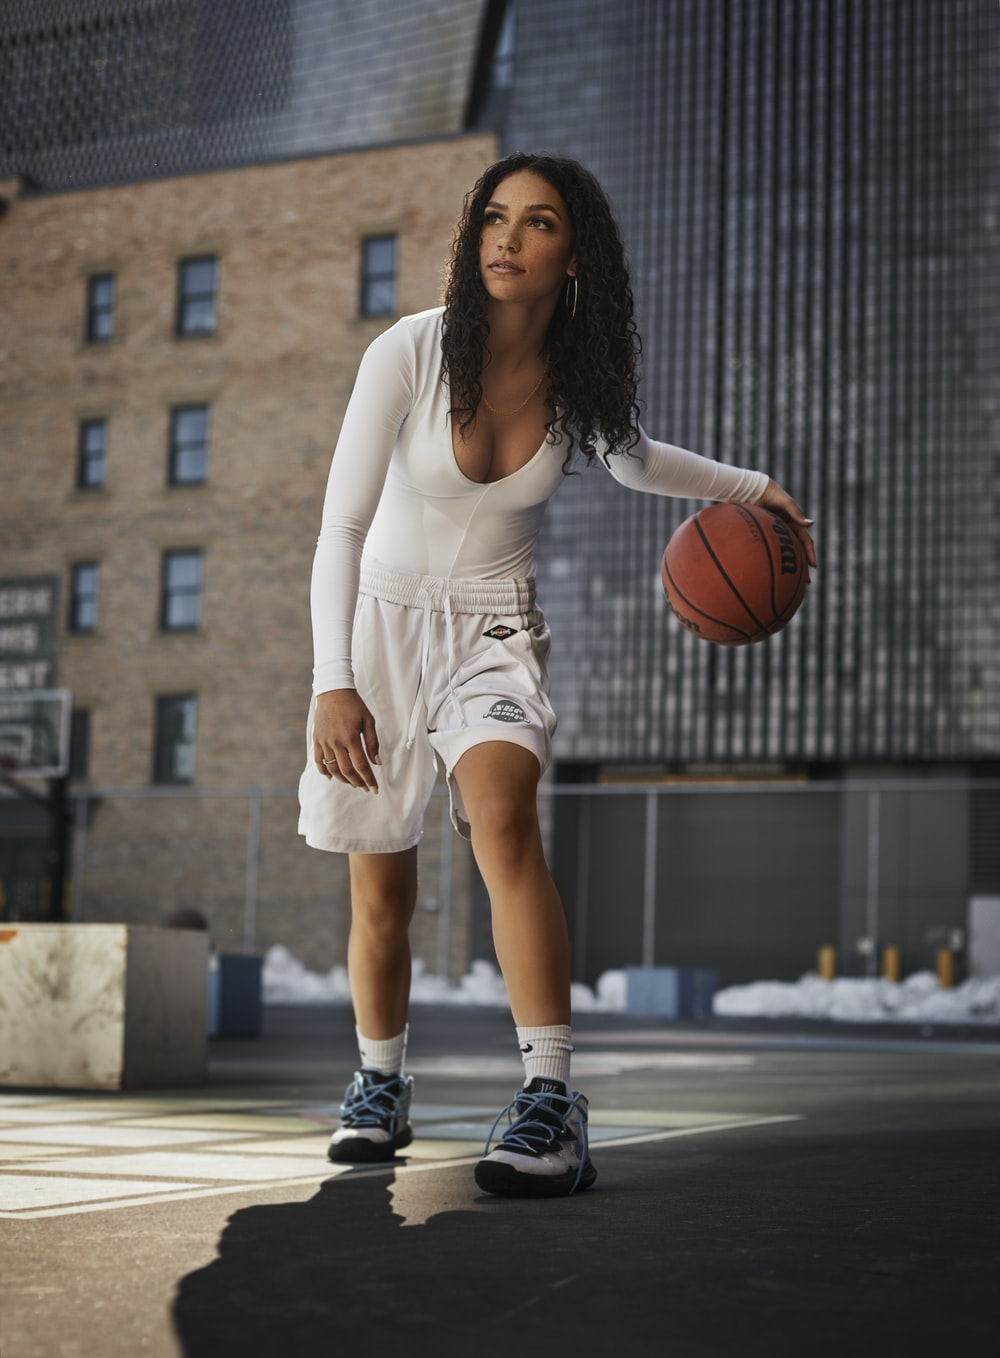 woman in white tank top and white shorts holding basketball